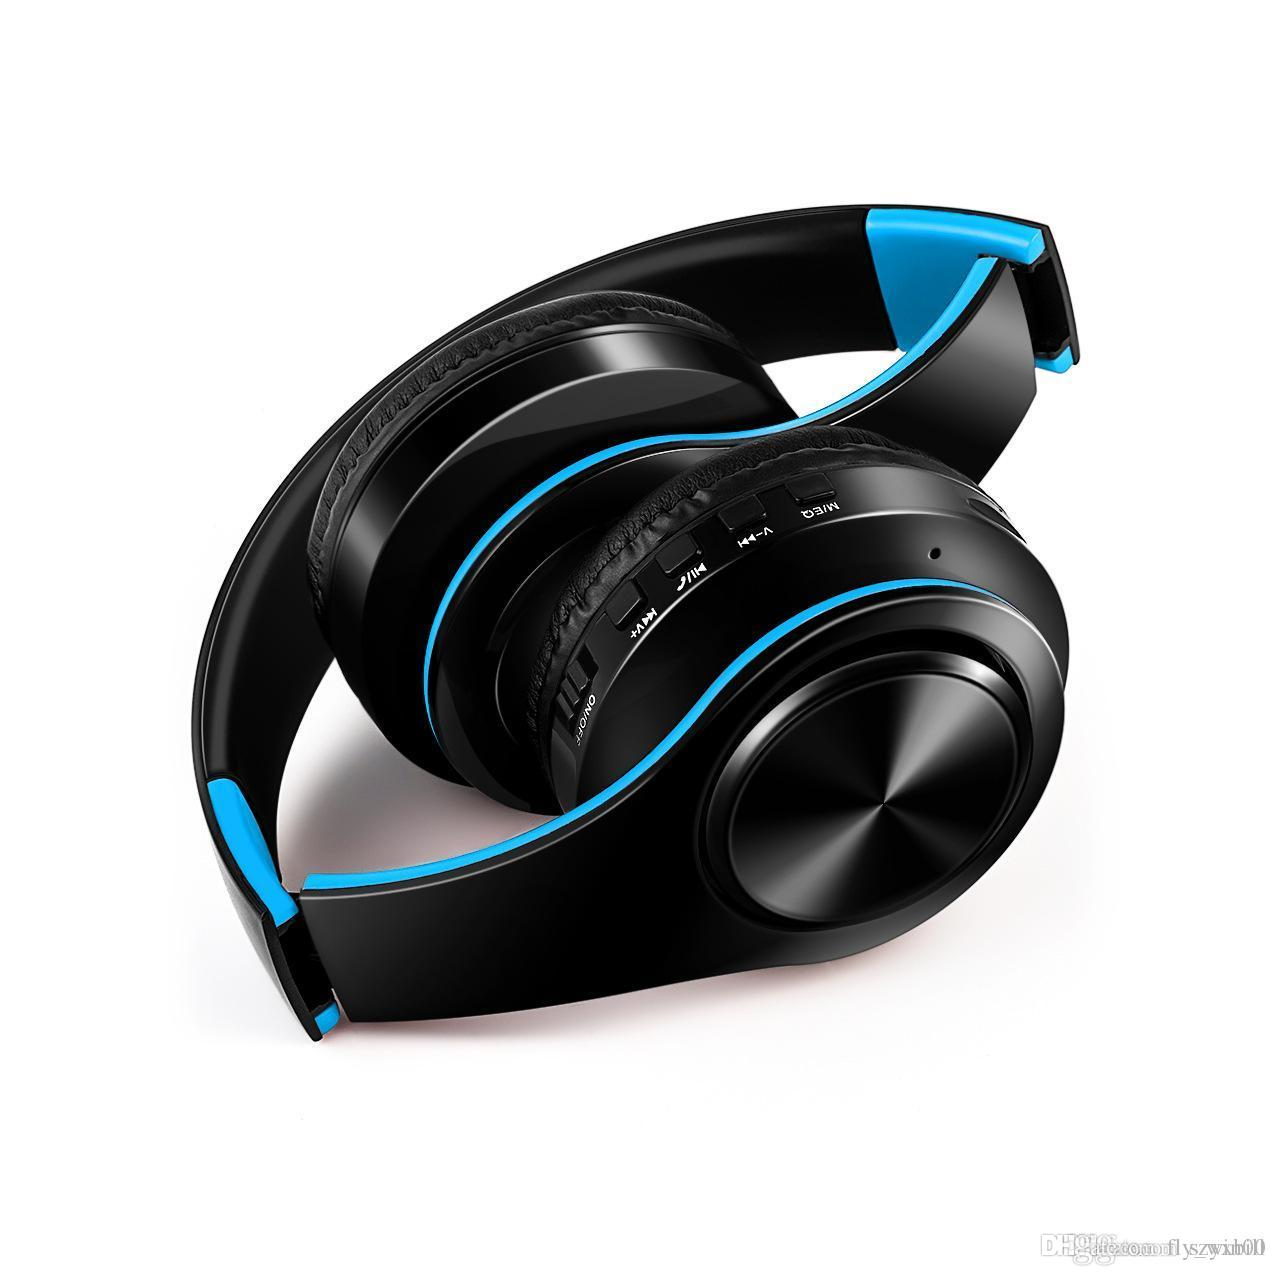 Super Bass Powerful Bluetooth V4 0 The Upgraded Version Of The New Bluetooth Headset Phone Card Wireless Stereo Headset Bluetooth Headset Headphones Online Headphones With Microphone From Fly Win00 18 9 Dhgate Com